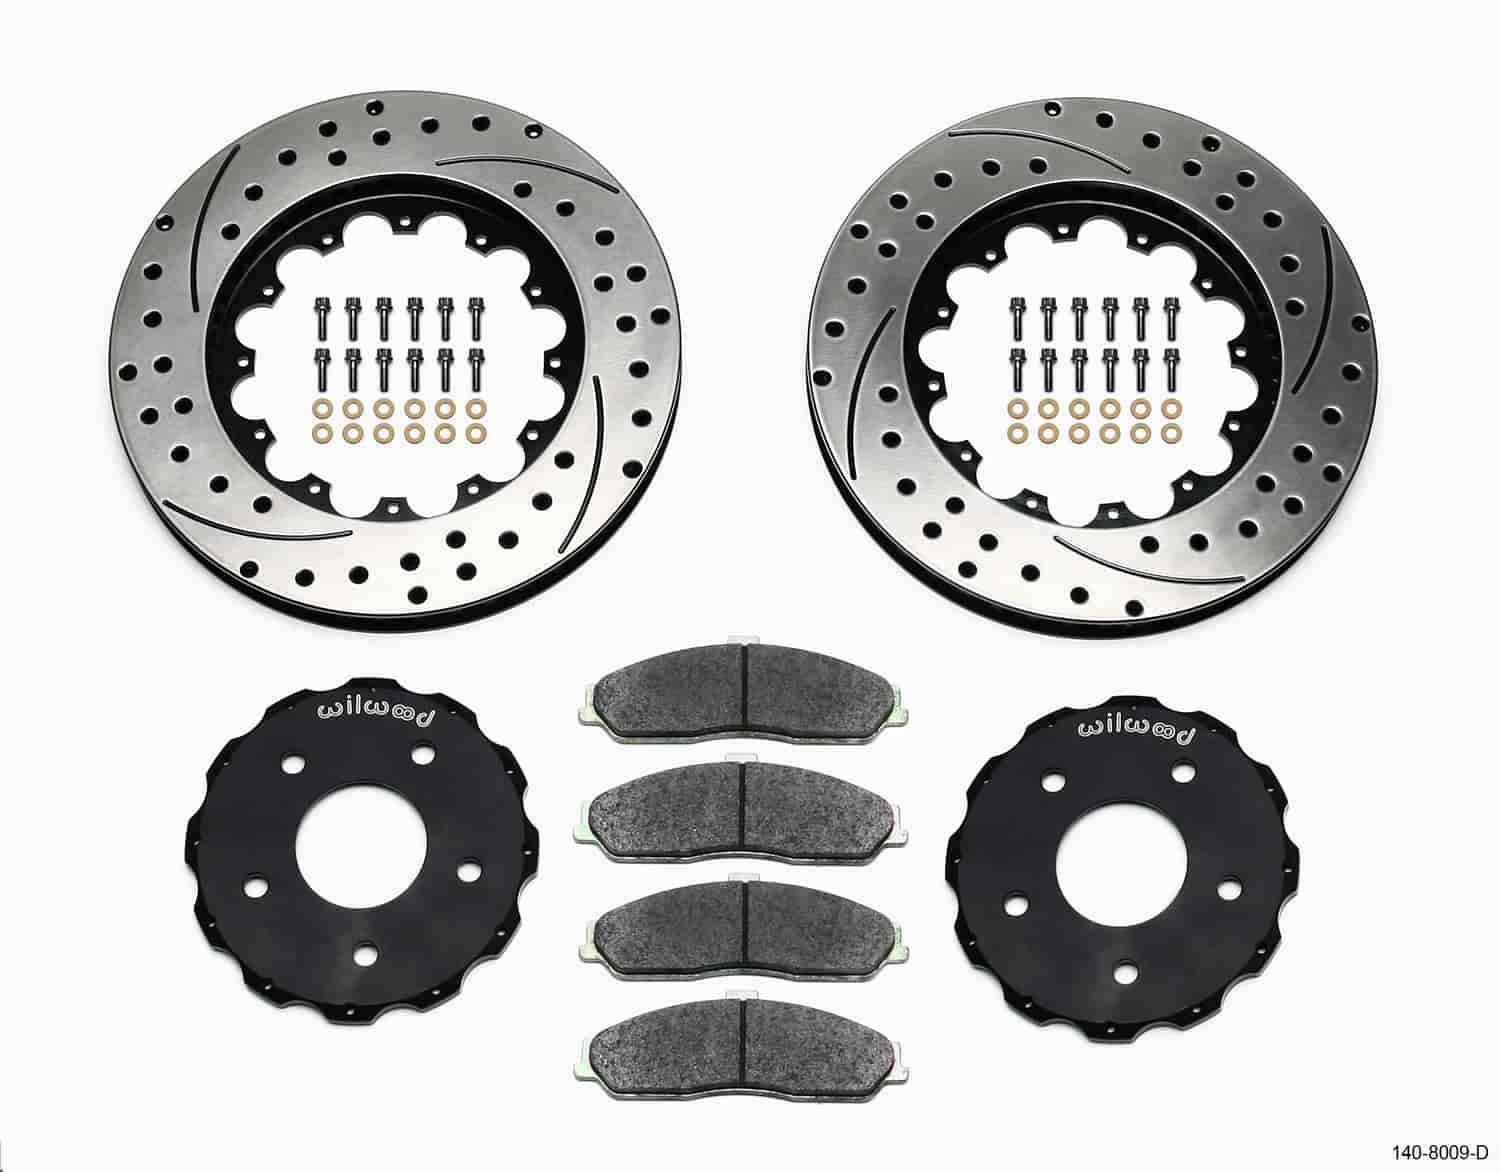 Wilwood 140-8009-D - Wilwood ProMatrix Brake Rotor Upgrade Kits